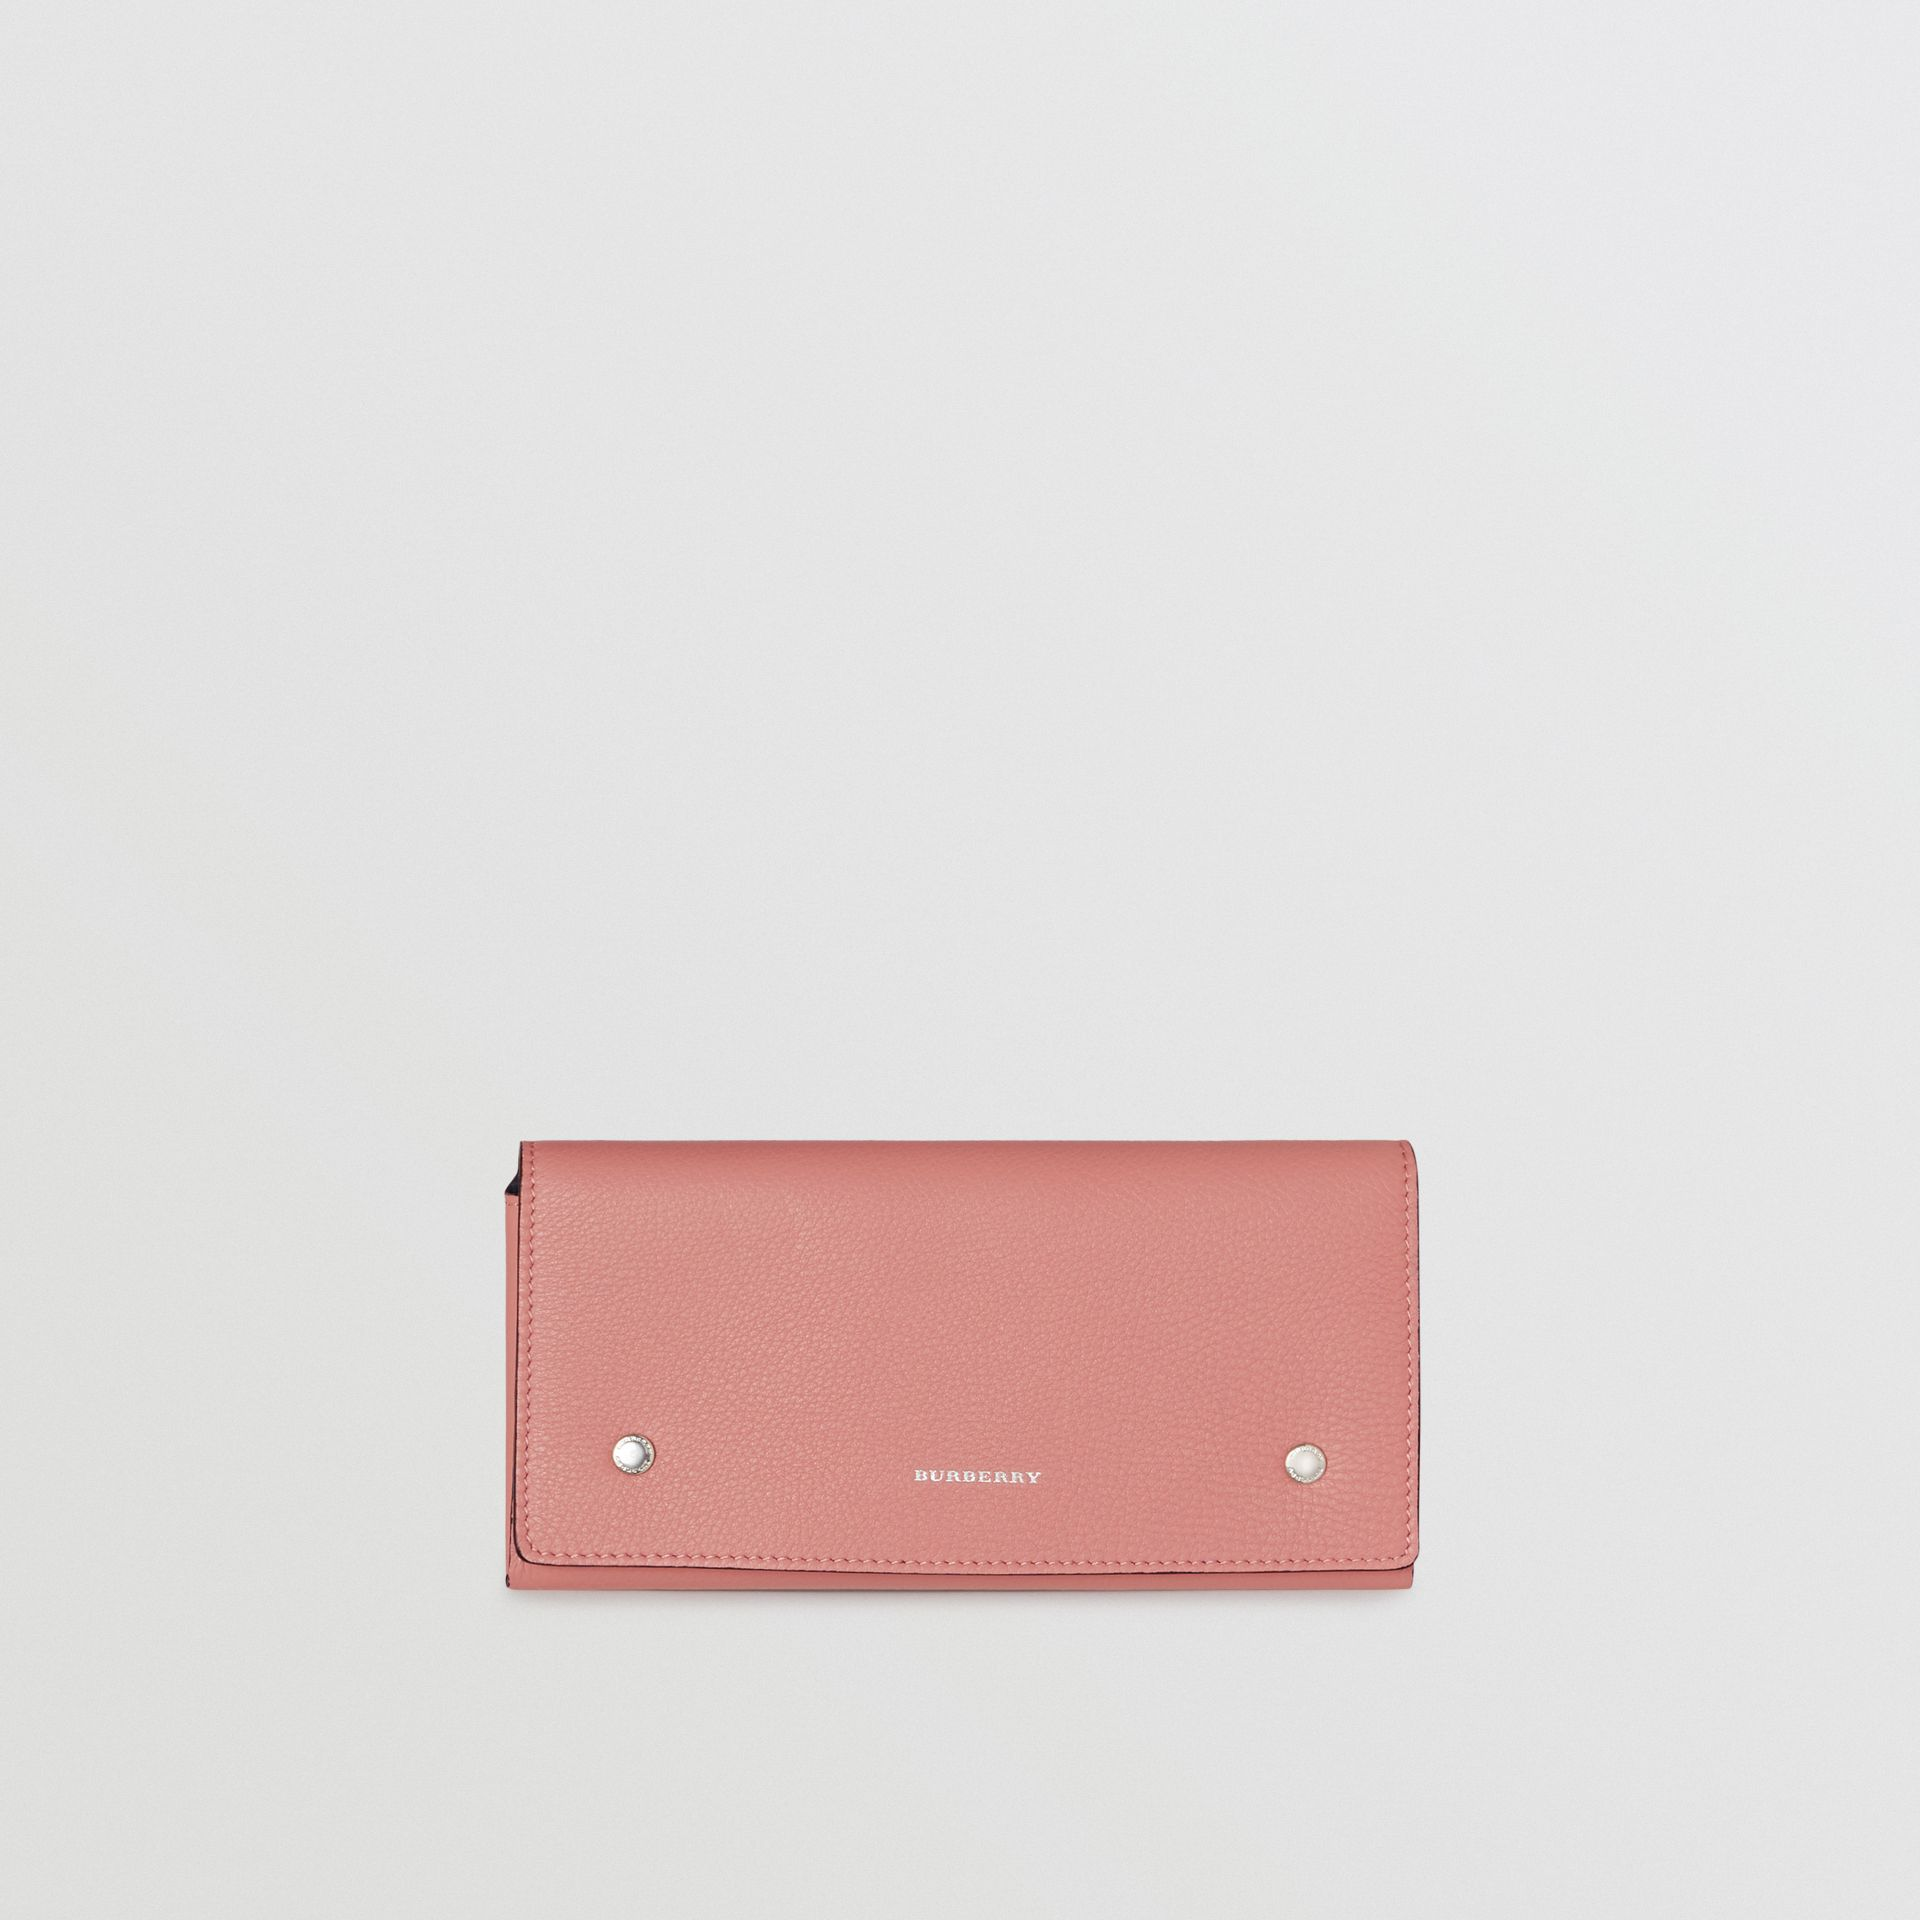 Two-tone Leather Continental Wallet in Dusty Rose - Women | Burberry - gallery image 5